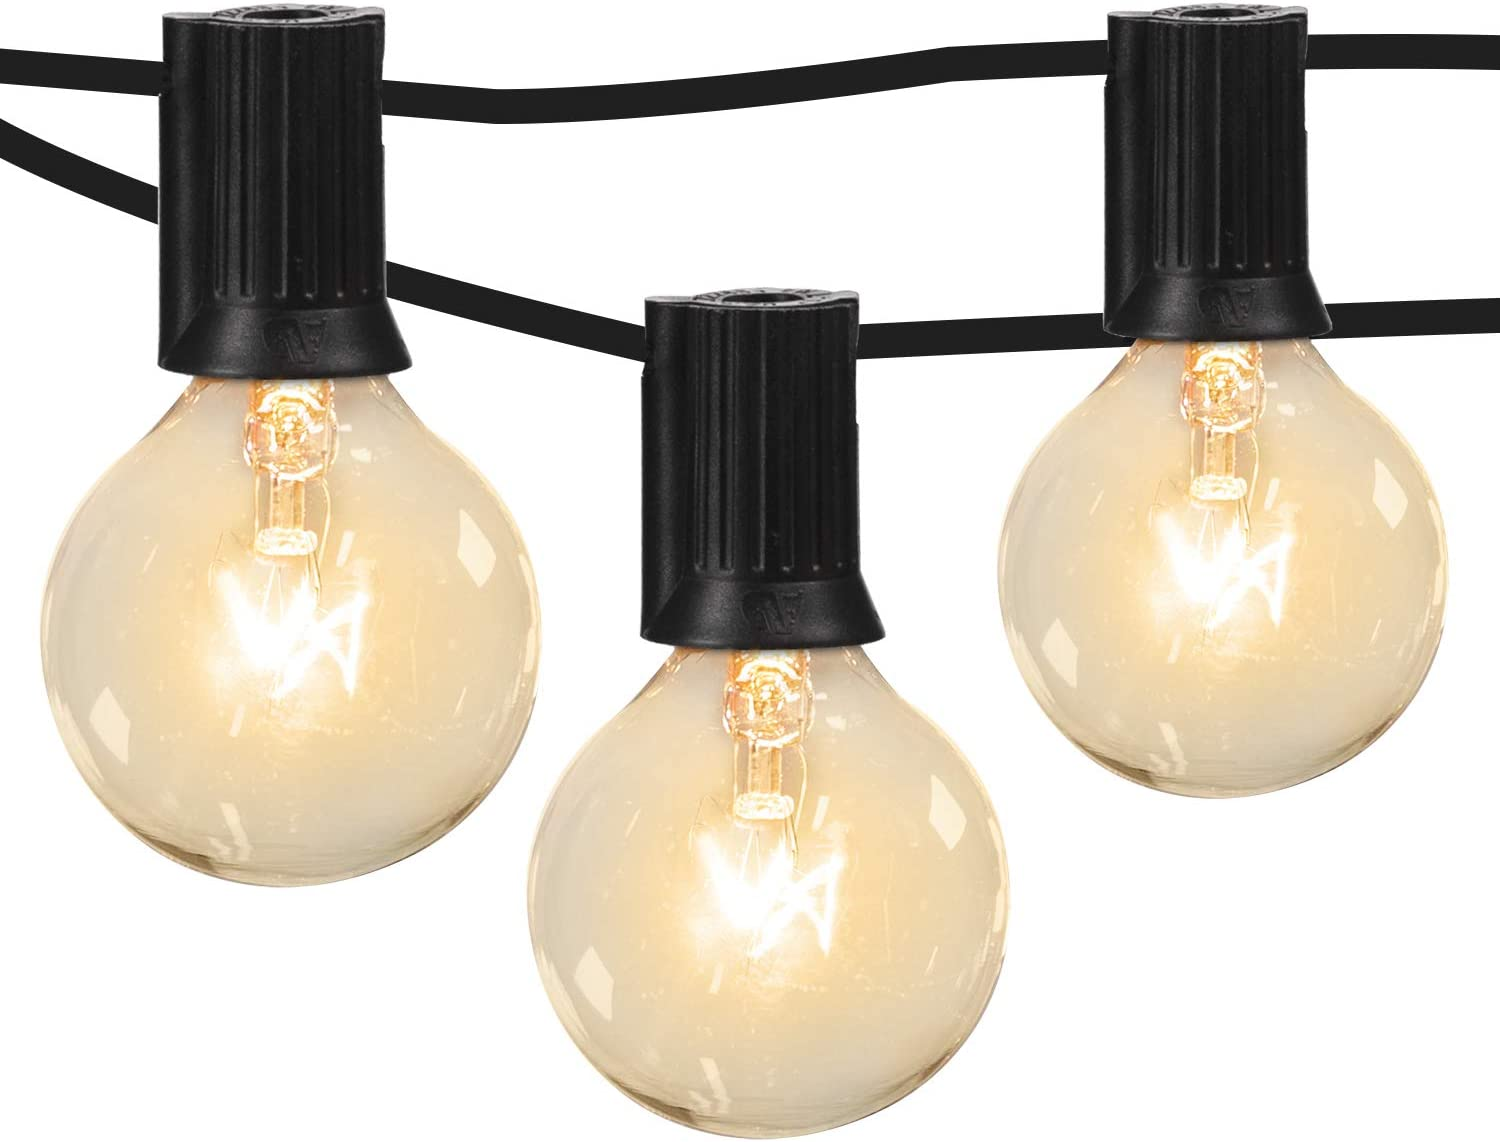 Moonflor 50ft G40 Patio String Lights With 50 Clear Edison Bulbs 2 Spare Bulbs For Indoor Outdoor Commercial Decor Warm White Globe String Lights Perfect For Backyard Garden Pergola Umbrella Black